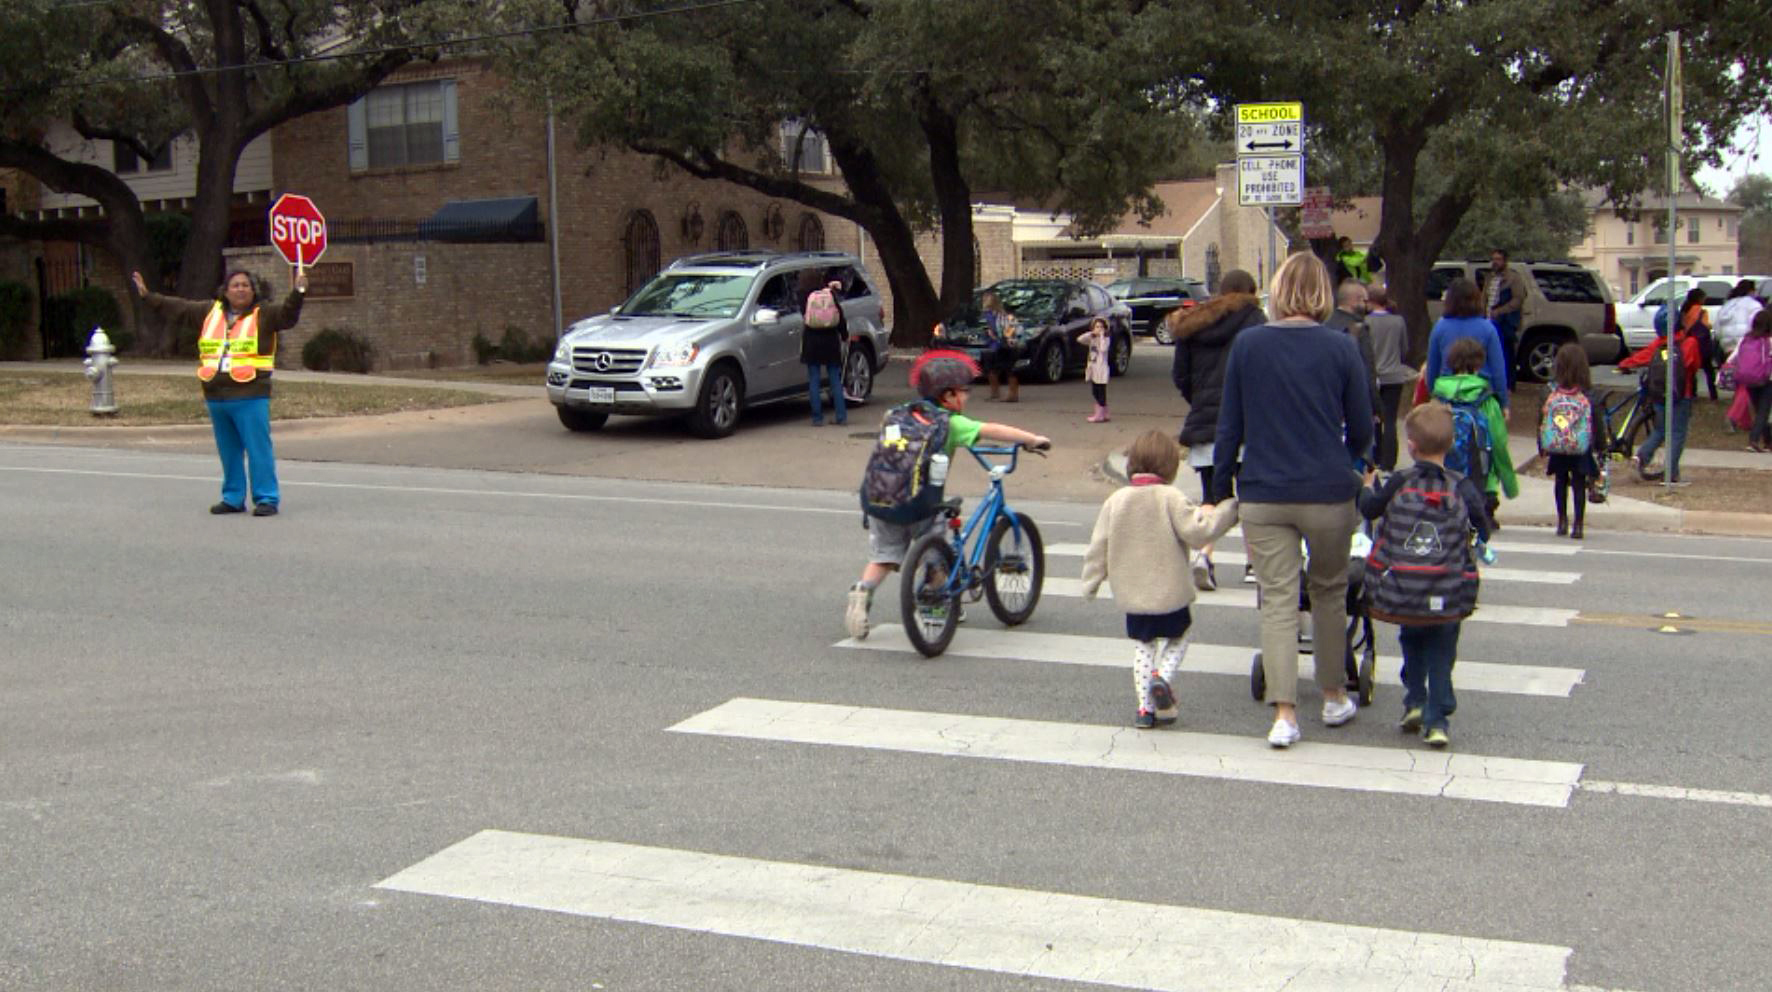 Crossing guard and children_239915